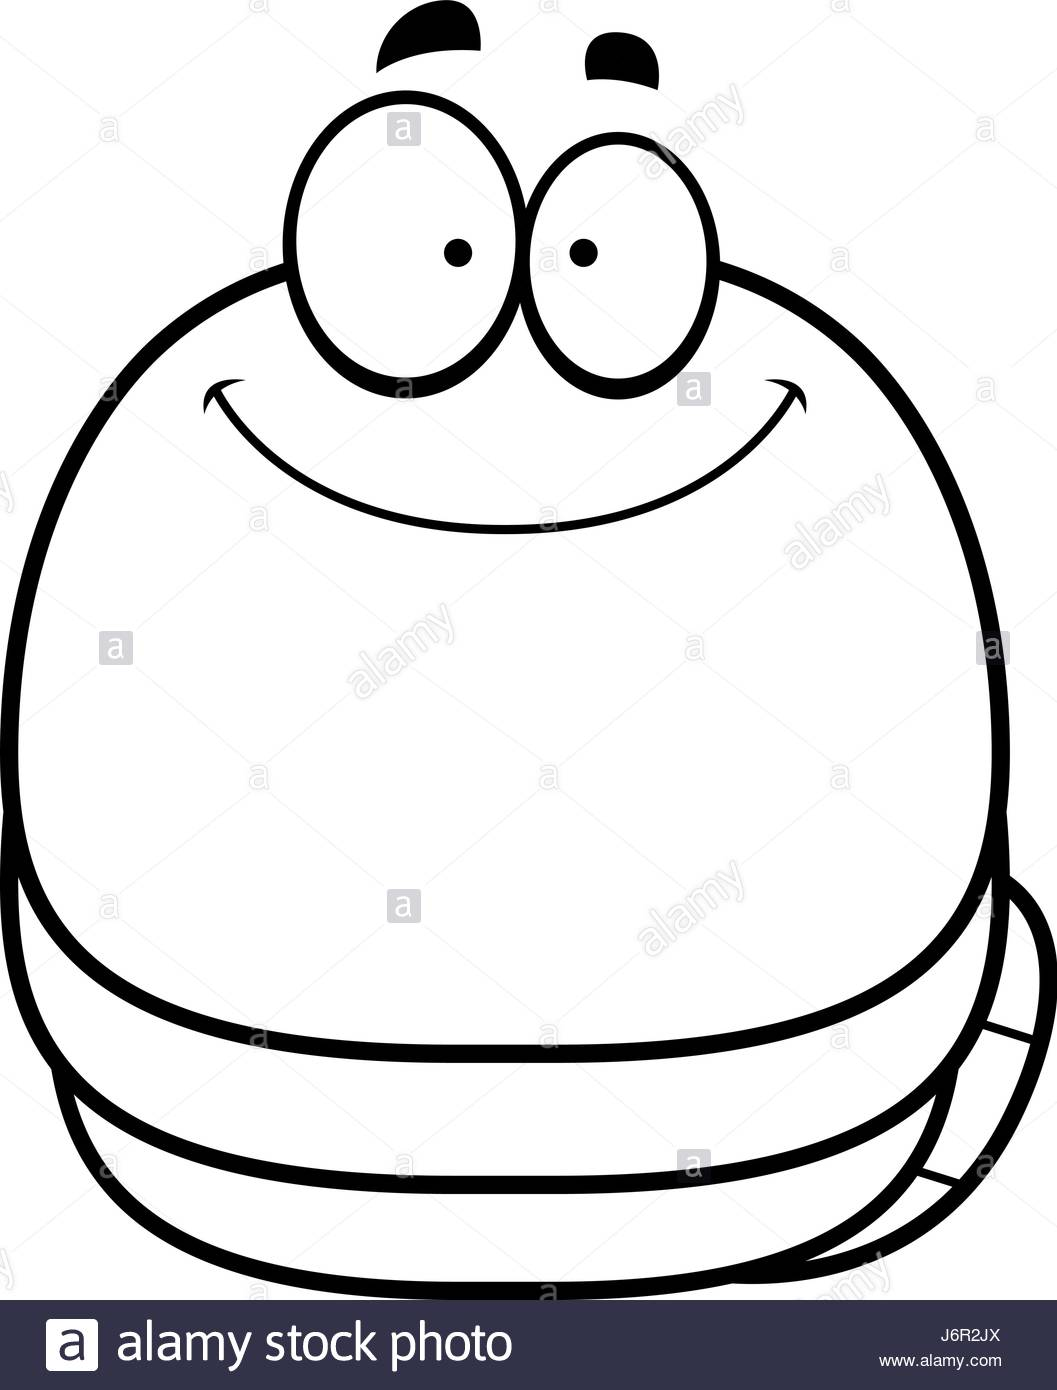 1057x1390 A Cartoon Illustration Of A Worm Smiling Stock Vector Art